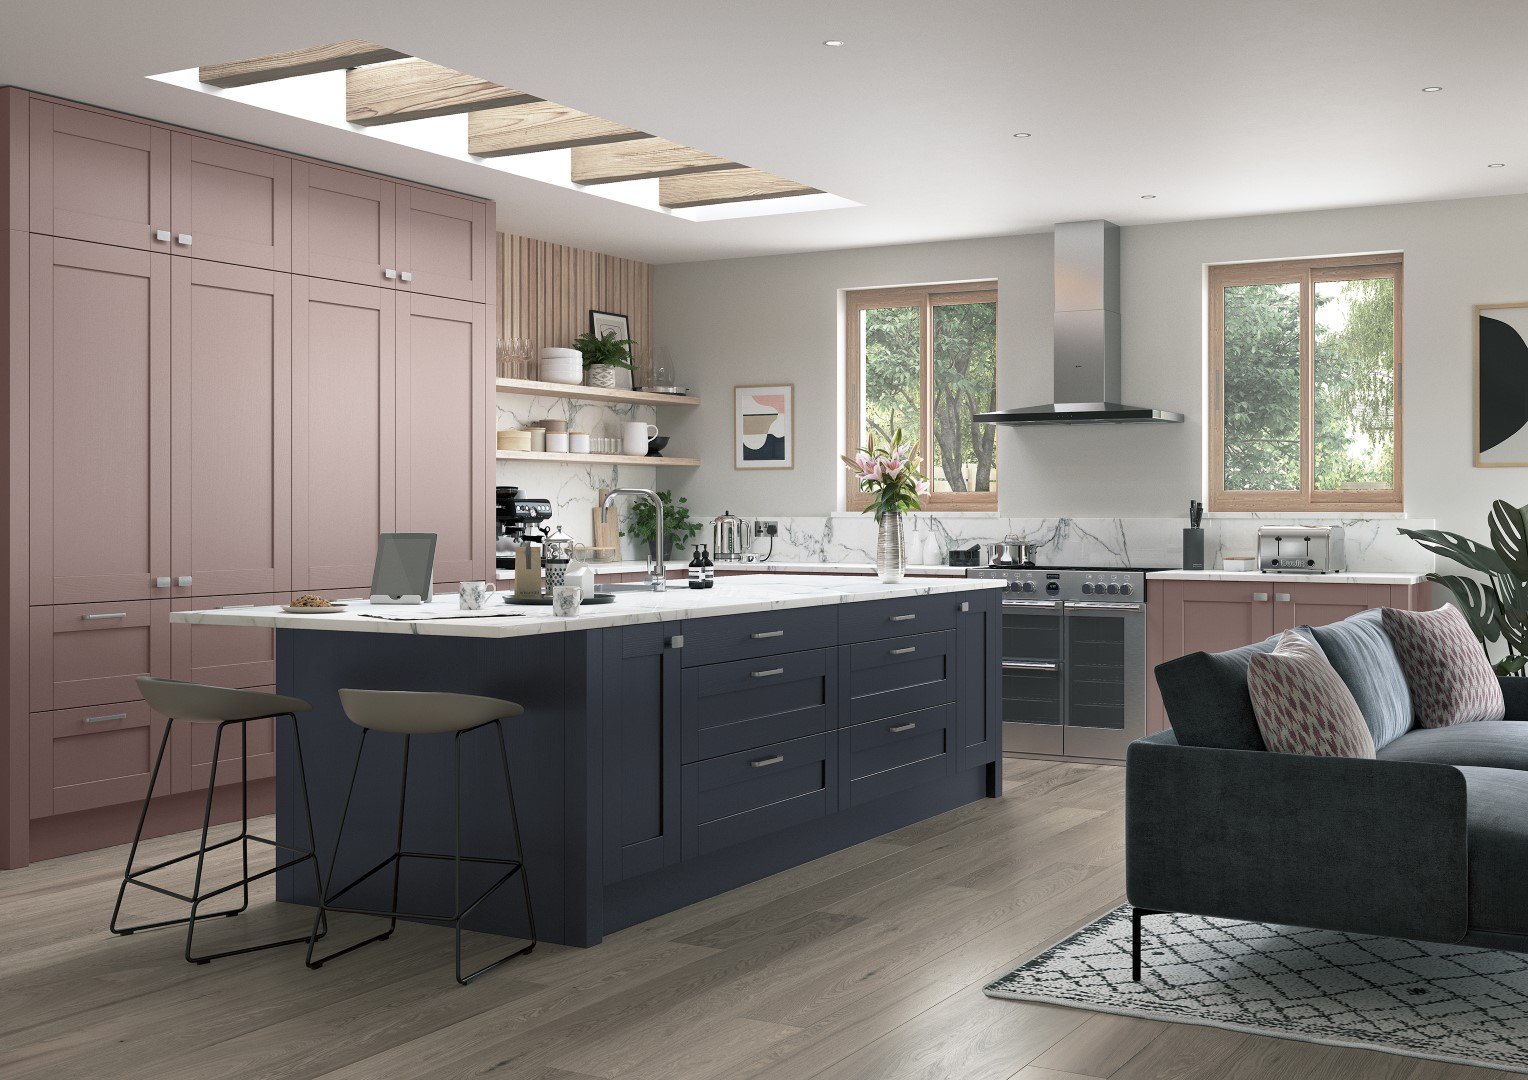 Madison Vintage Pink and Slate Blue - Kitchen Design - Alan Kelly Kitchens - Waterford - 5